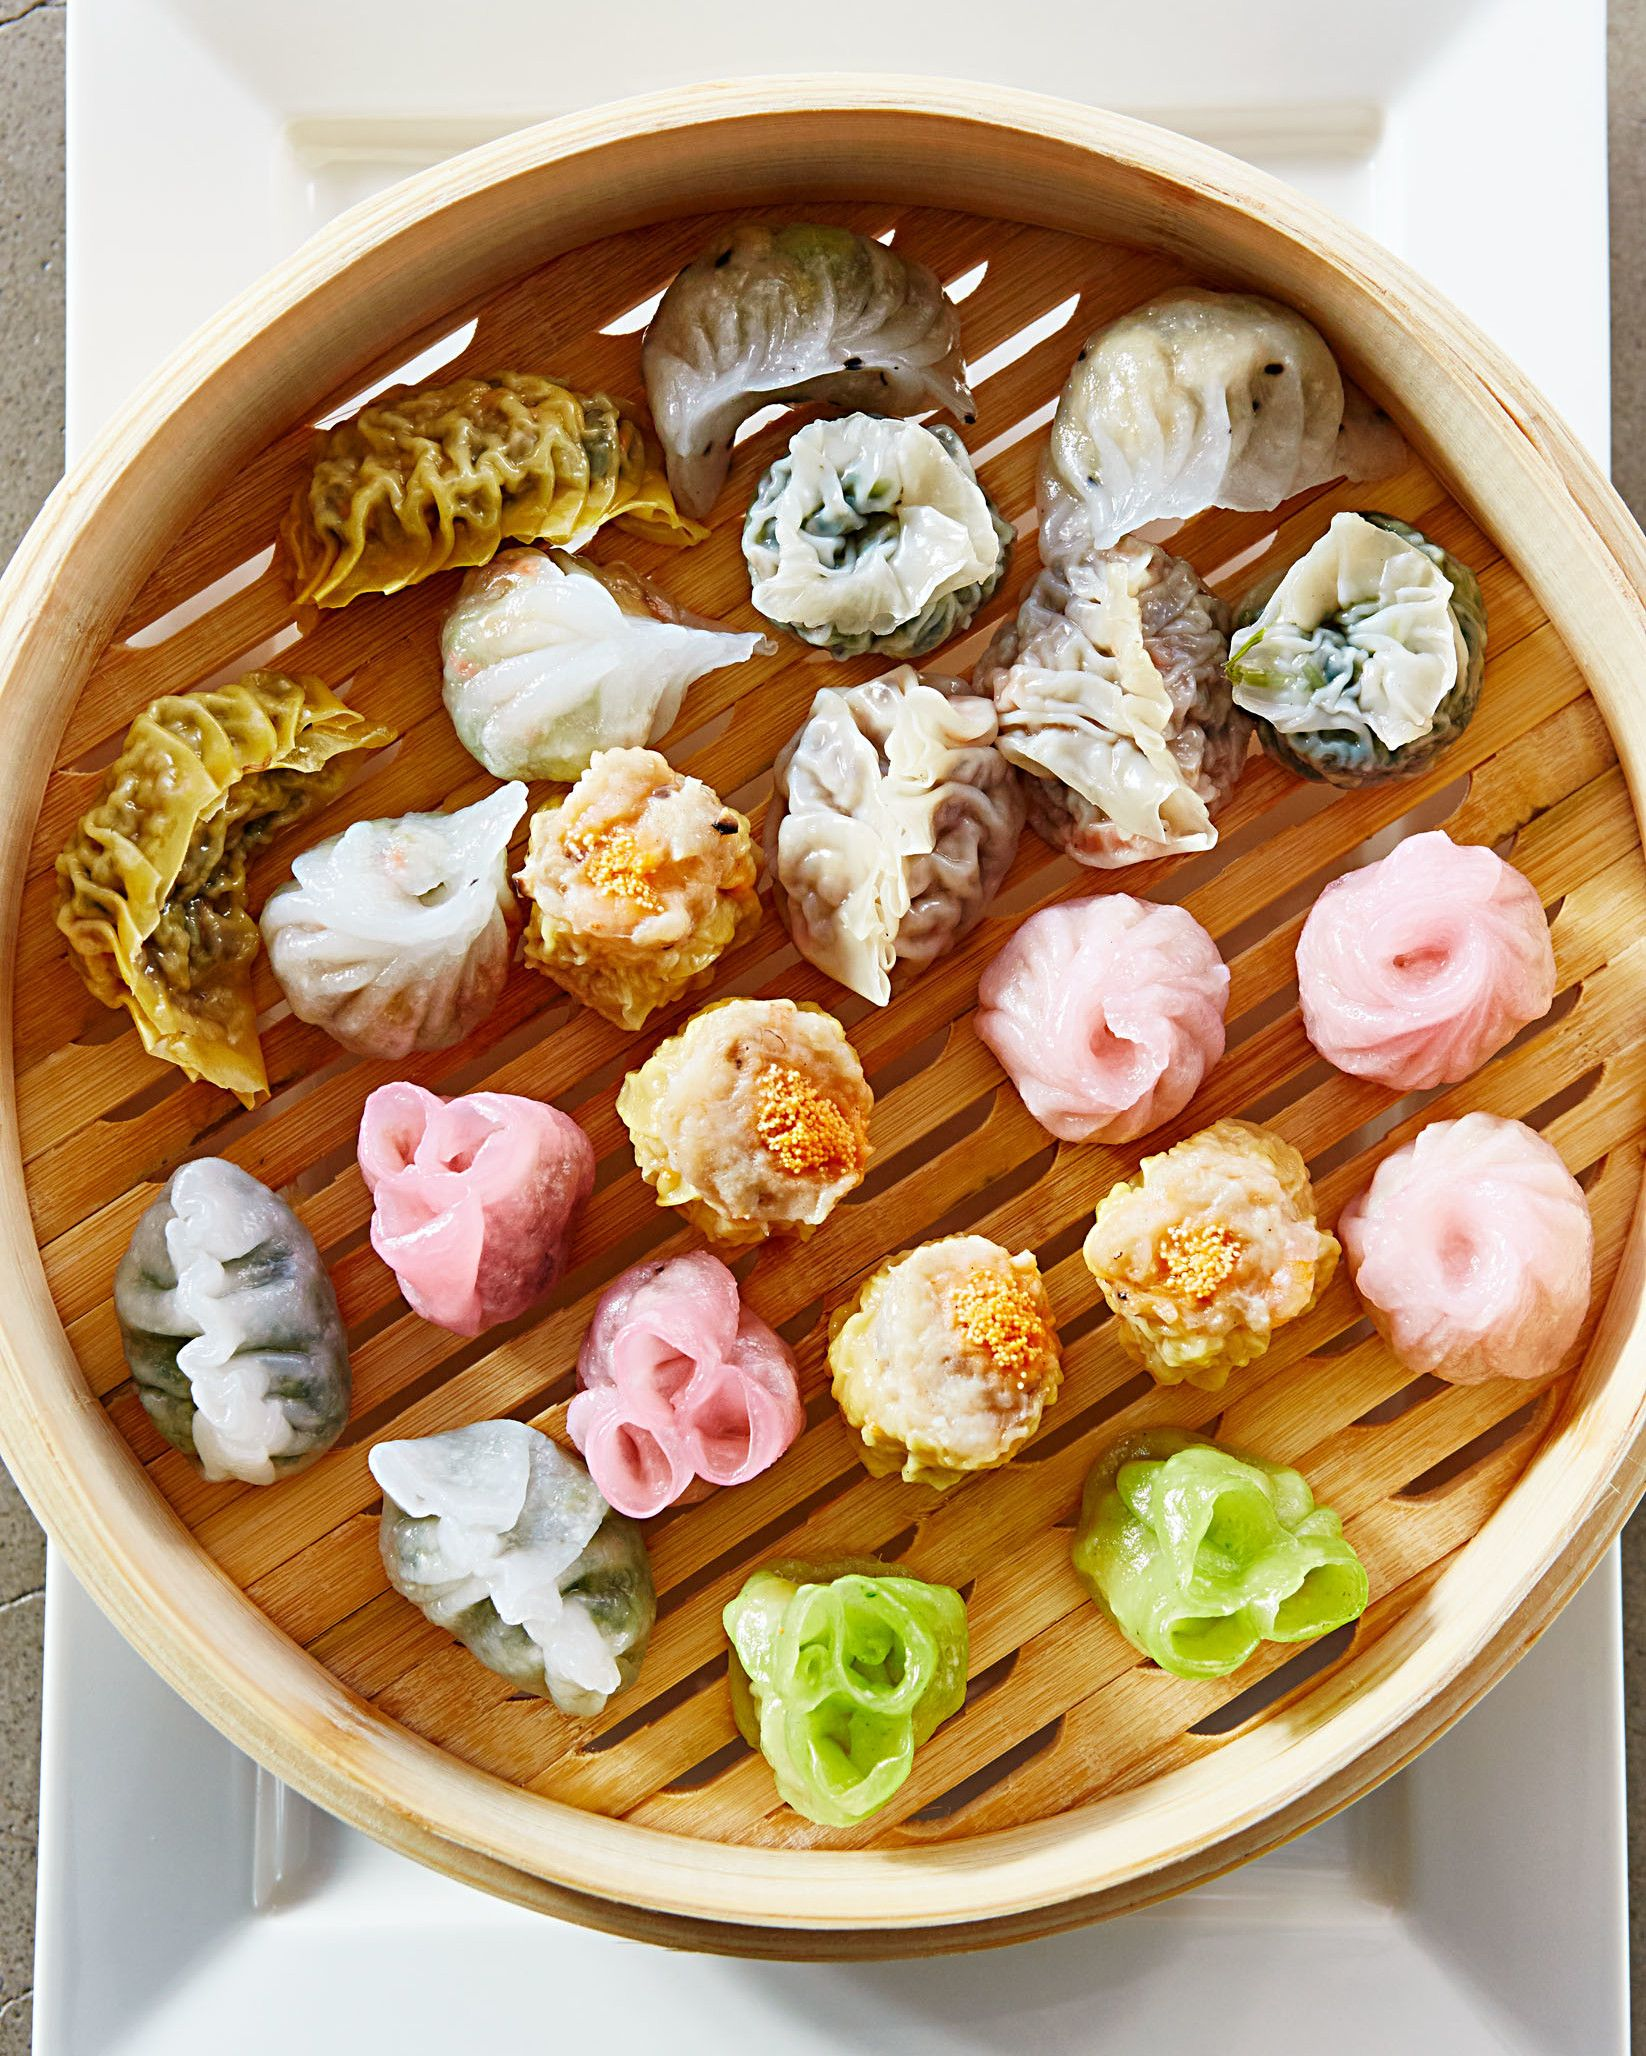 12 Lucky Ways To Ring In The Lunar New Year Chinese New Year Food New Year S Food Tea Party Food